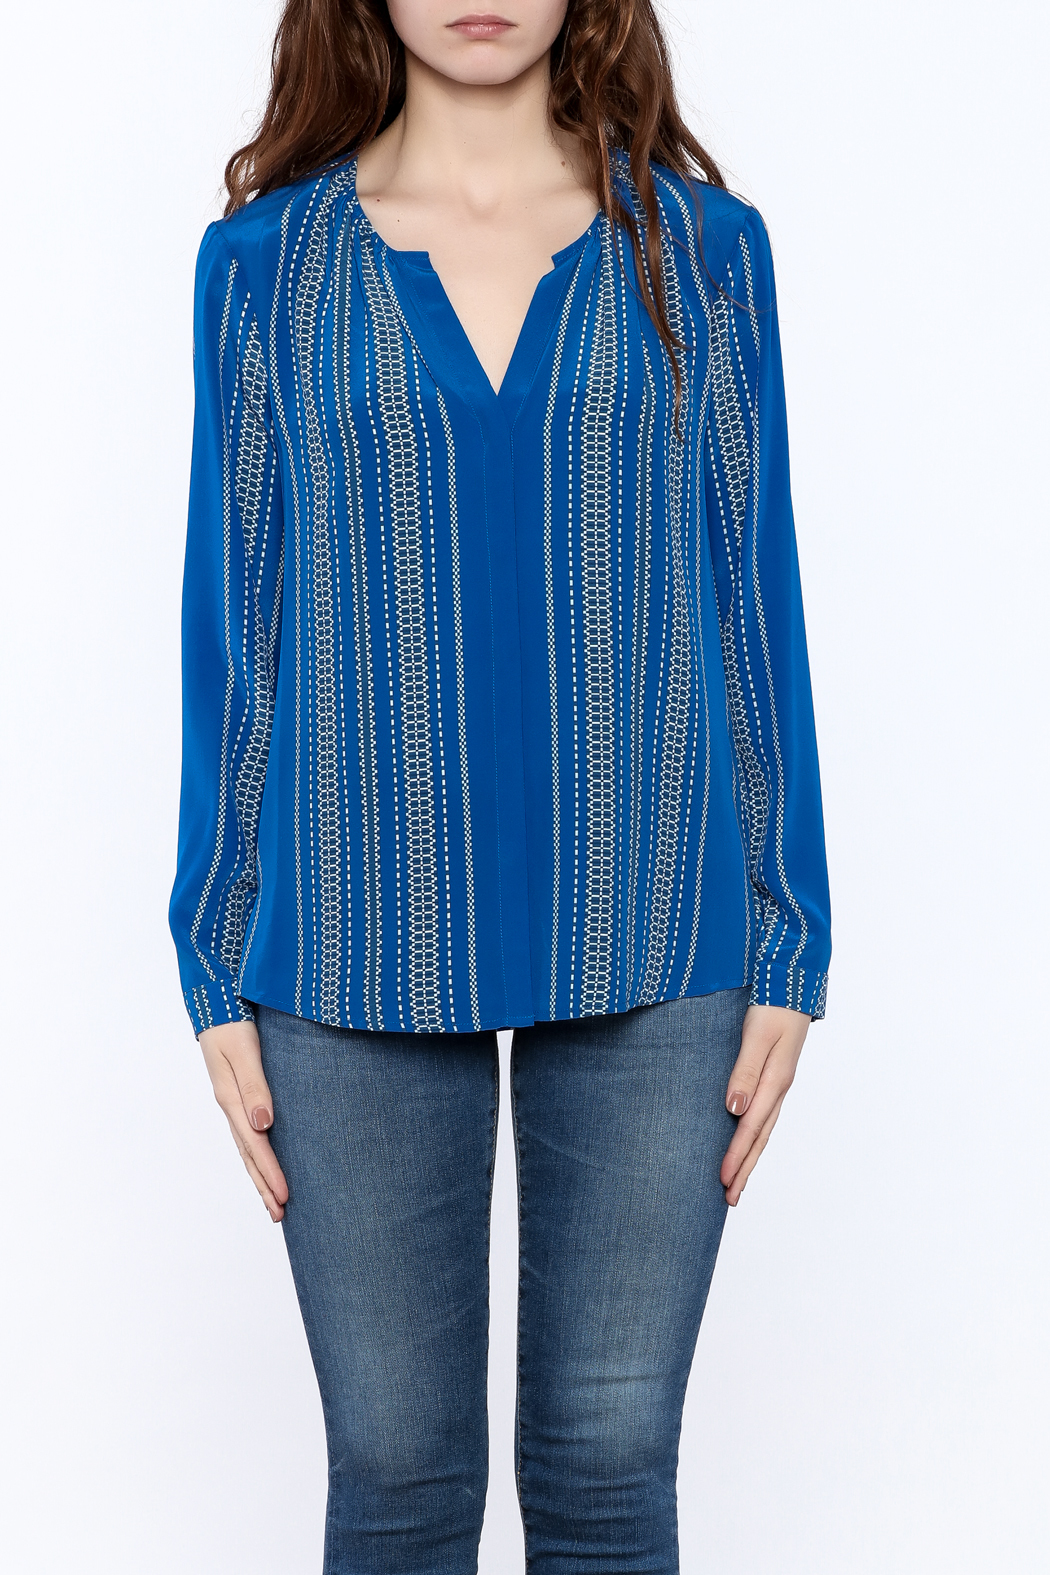 Santorini Blue Blouse